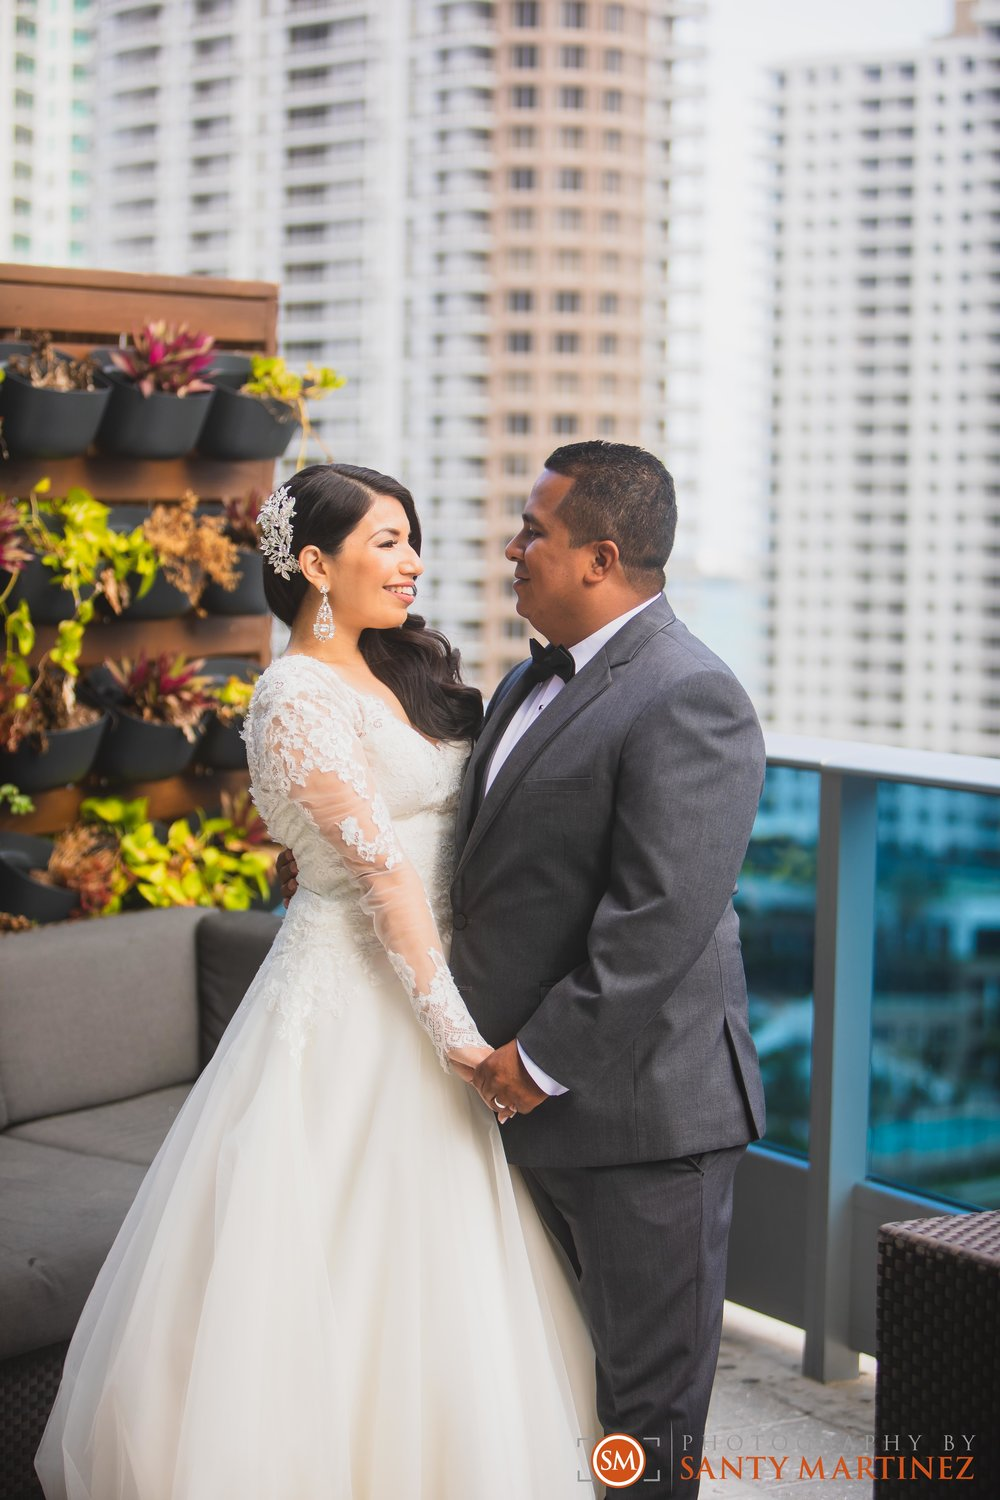 Wedding Epic Hotel Miami - Photography by Santy Martinez-34.jpg